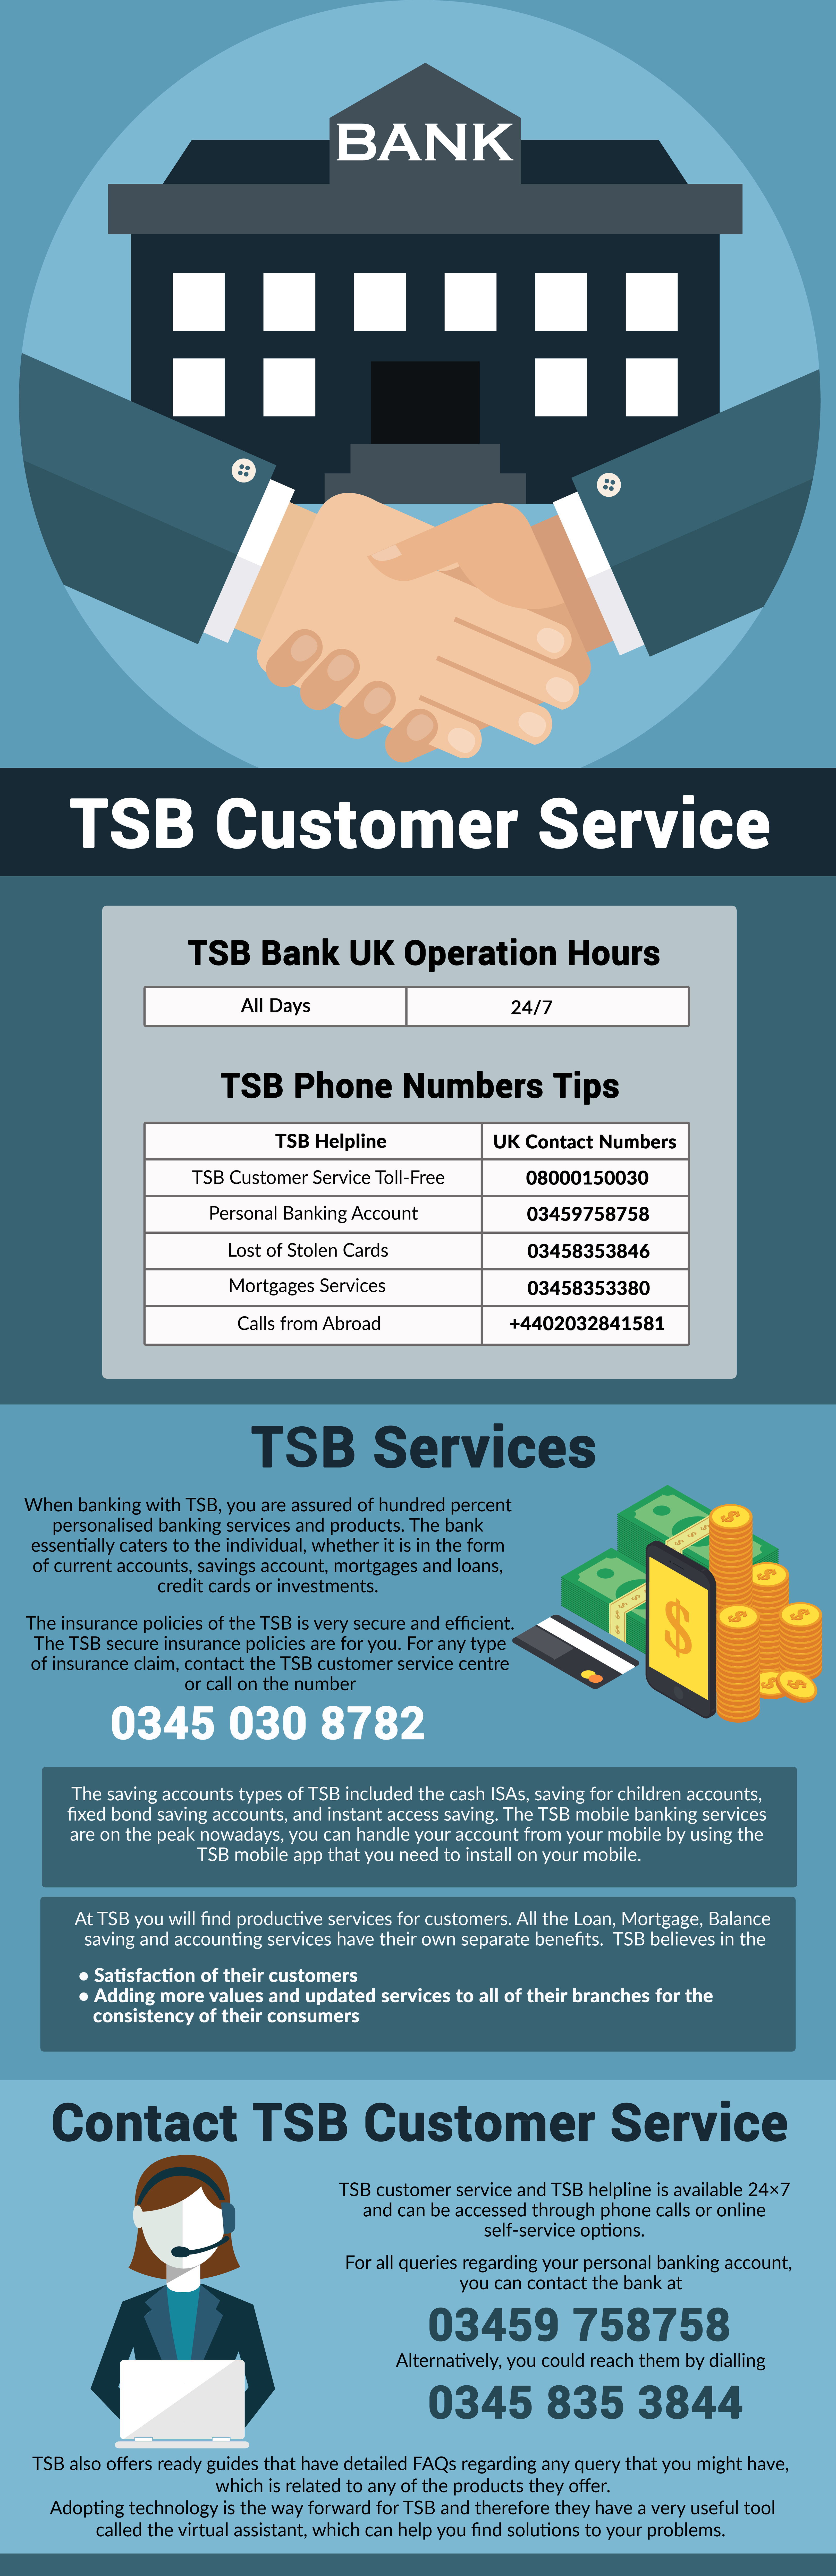 TSB Contact Number